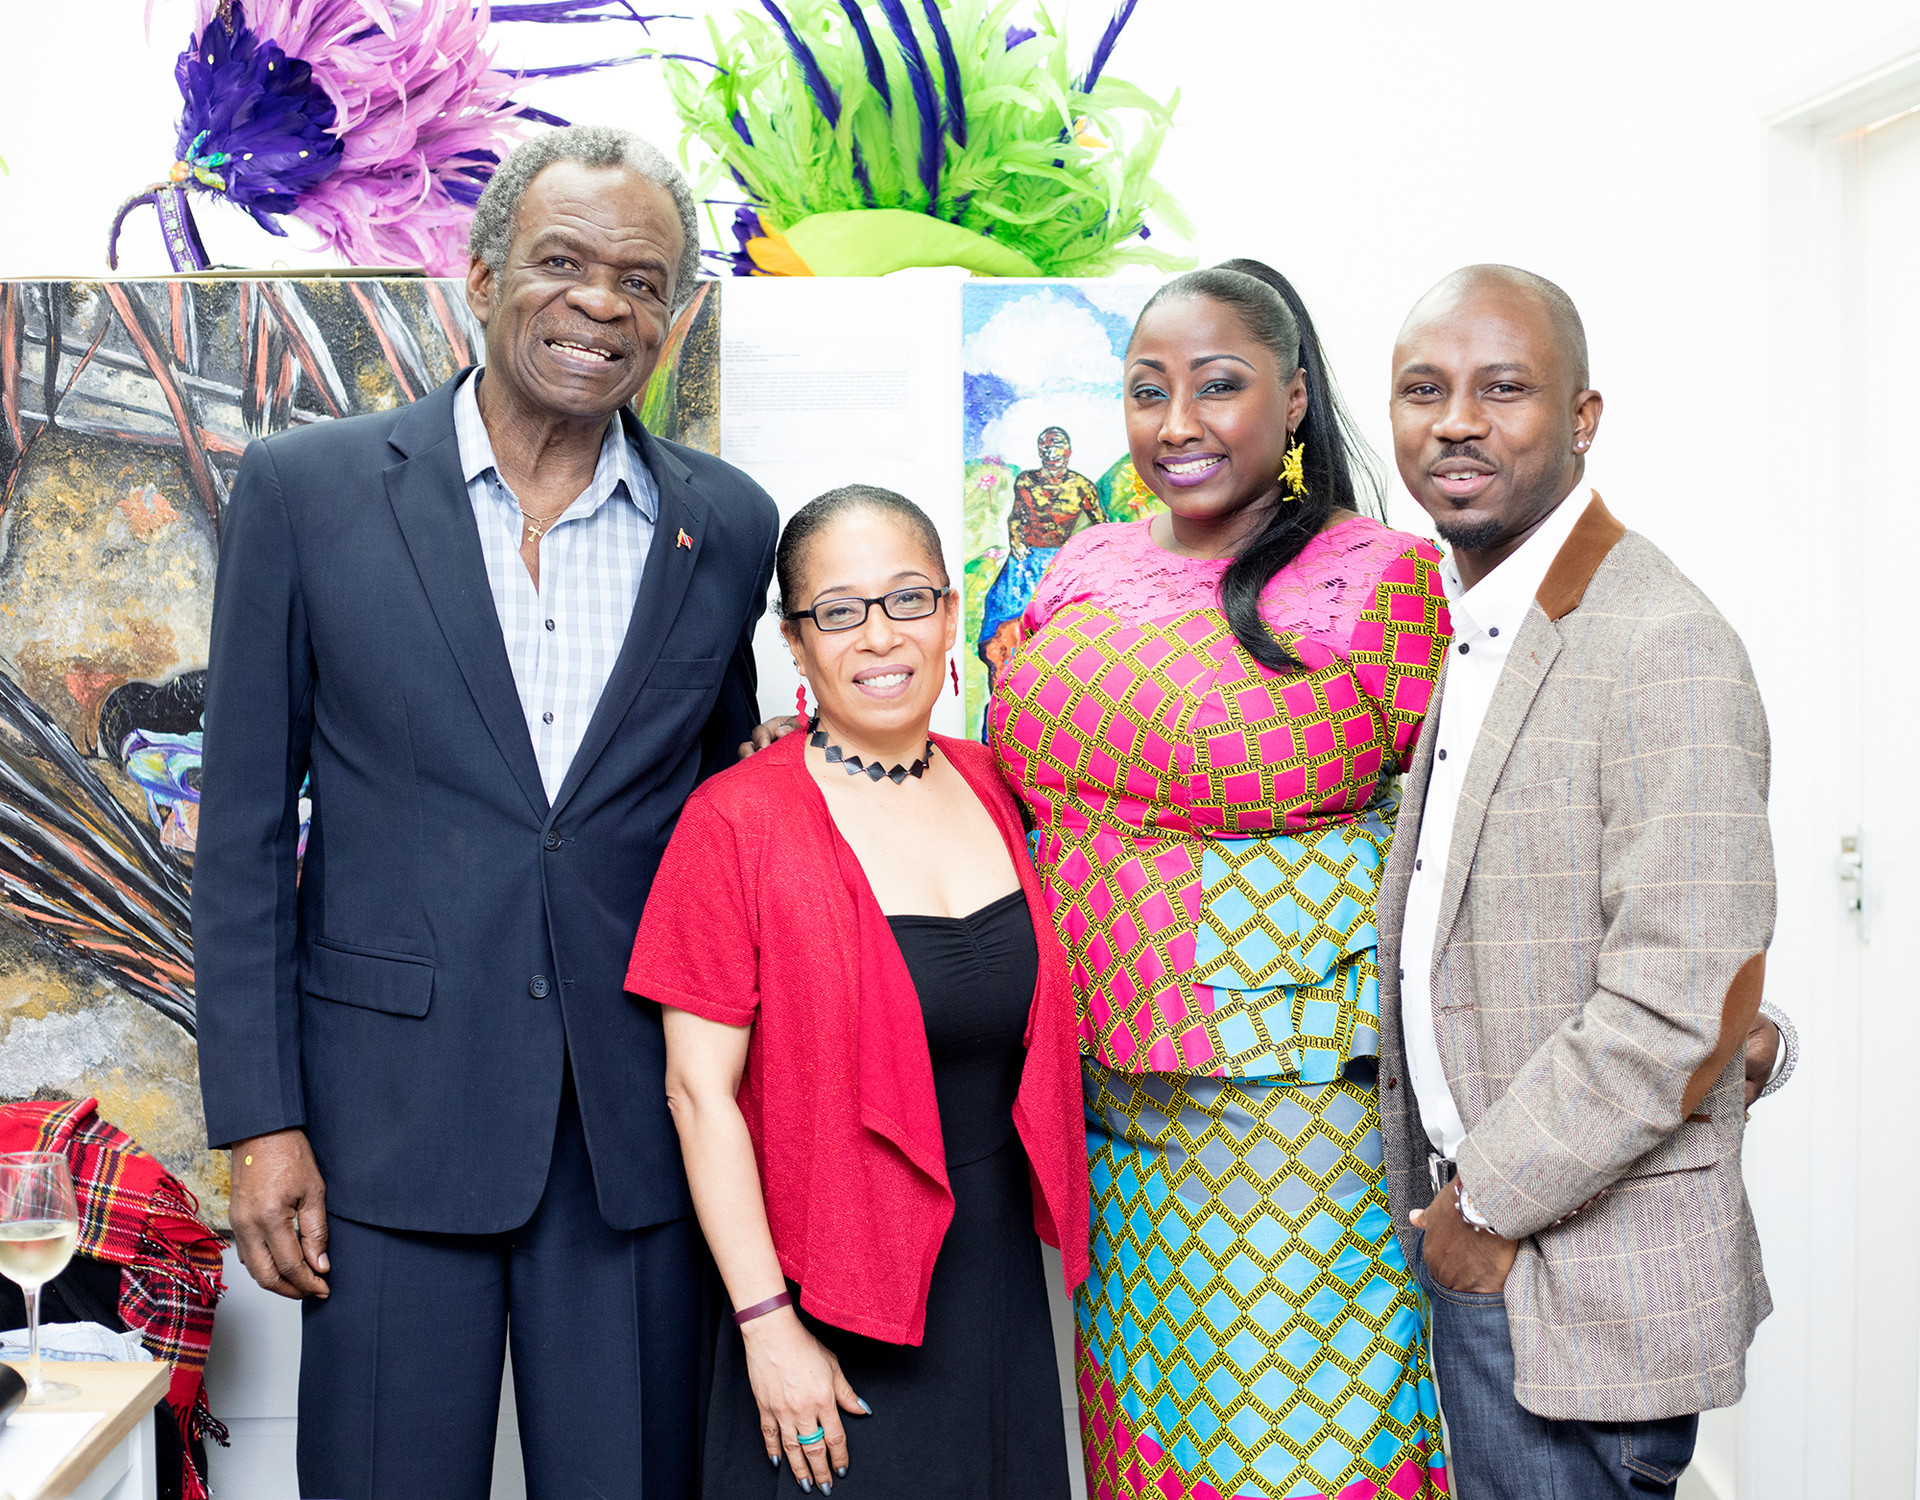 His Excellency Orville London High Commissioner of Trinidad & Tobago, London, Elizabeth James, Tricia Trotman-Maraj and Dwayne Smith of Tropical Mas Association